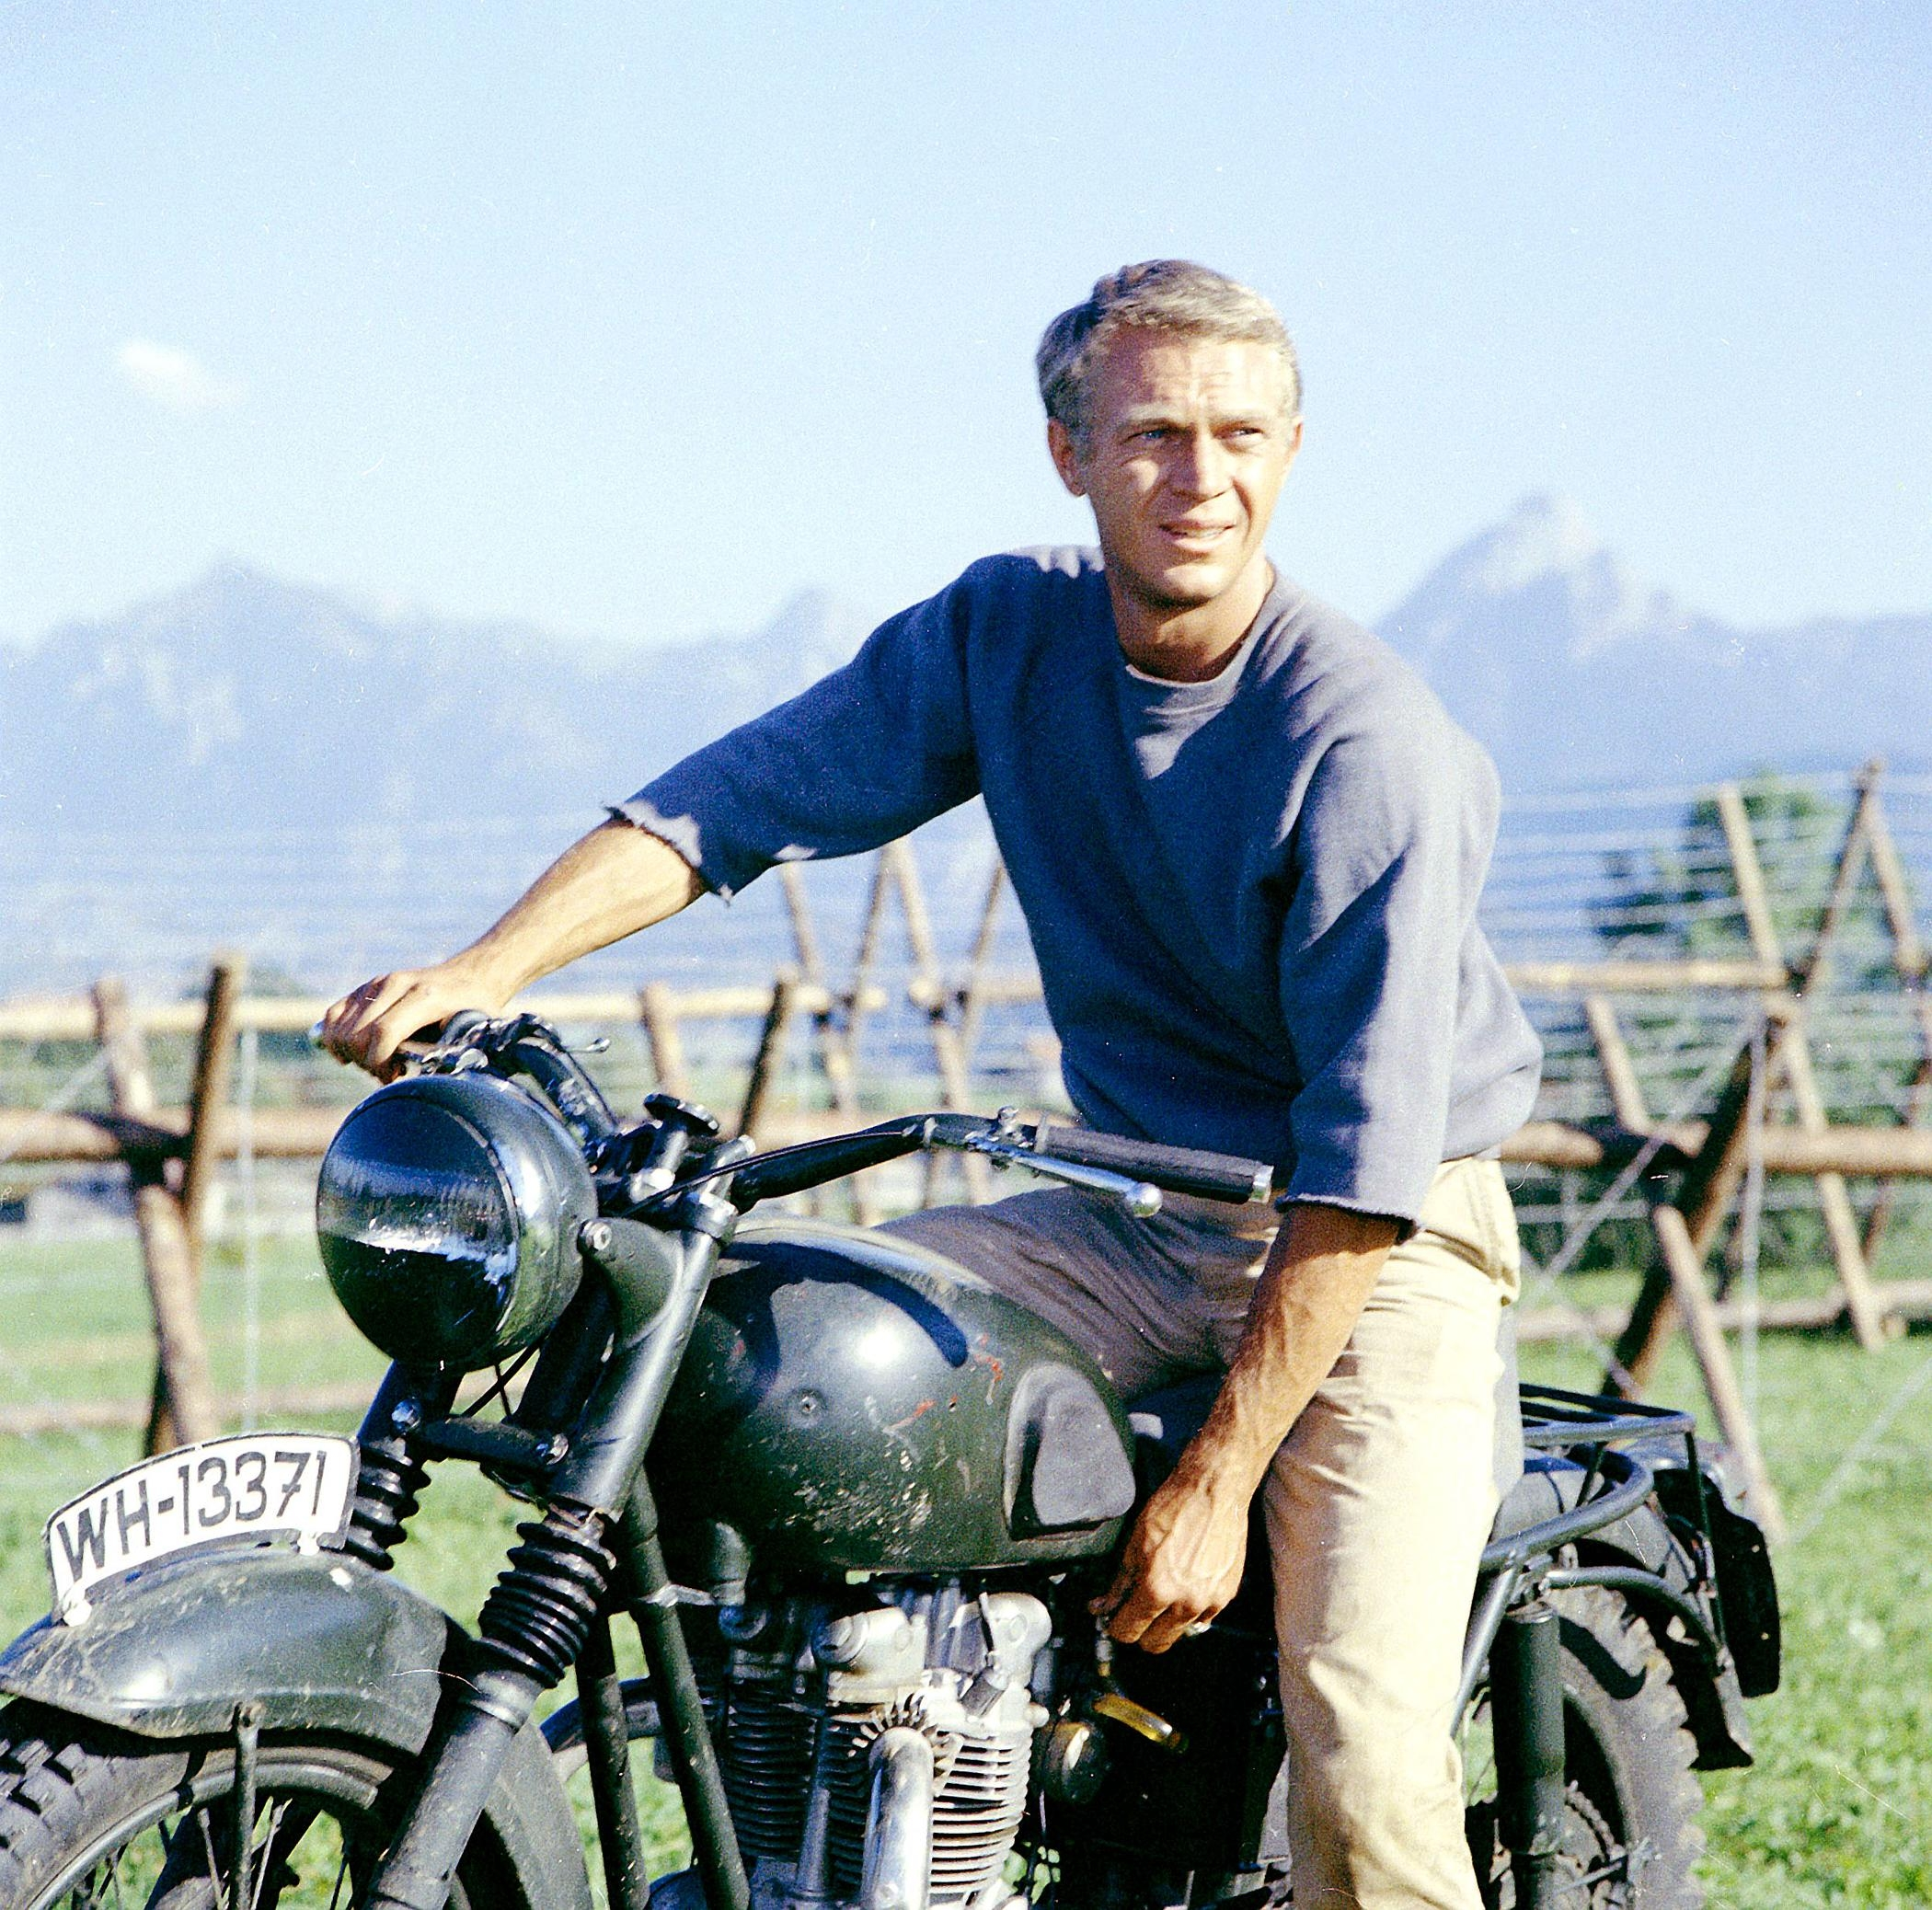 Steve Mcqueen | Longitudes Pertaining To Steve Mcqueen Wall Art (View 17 of 20)